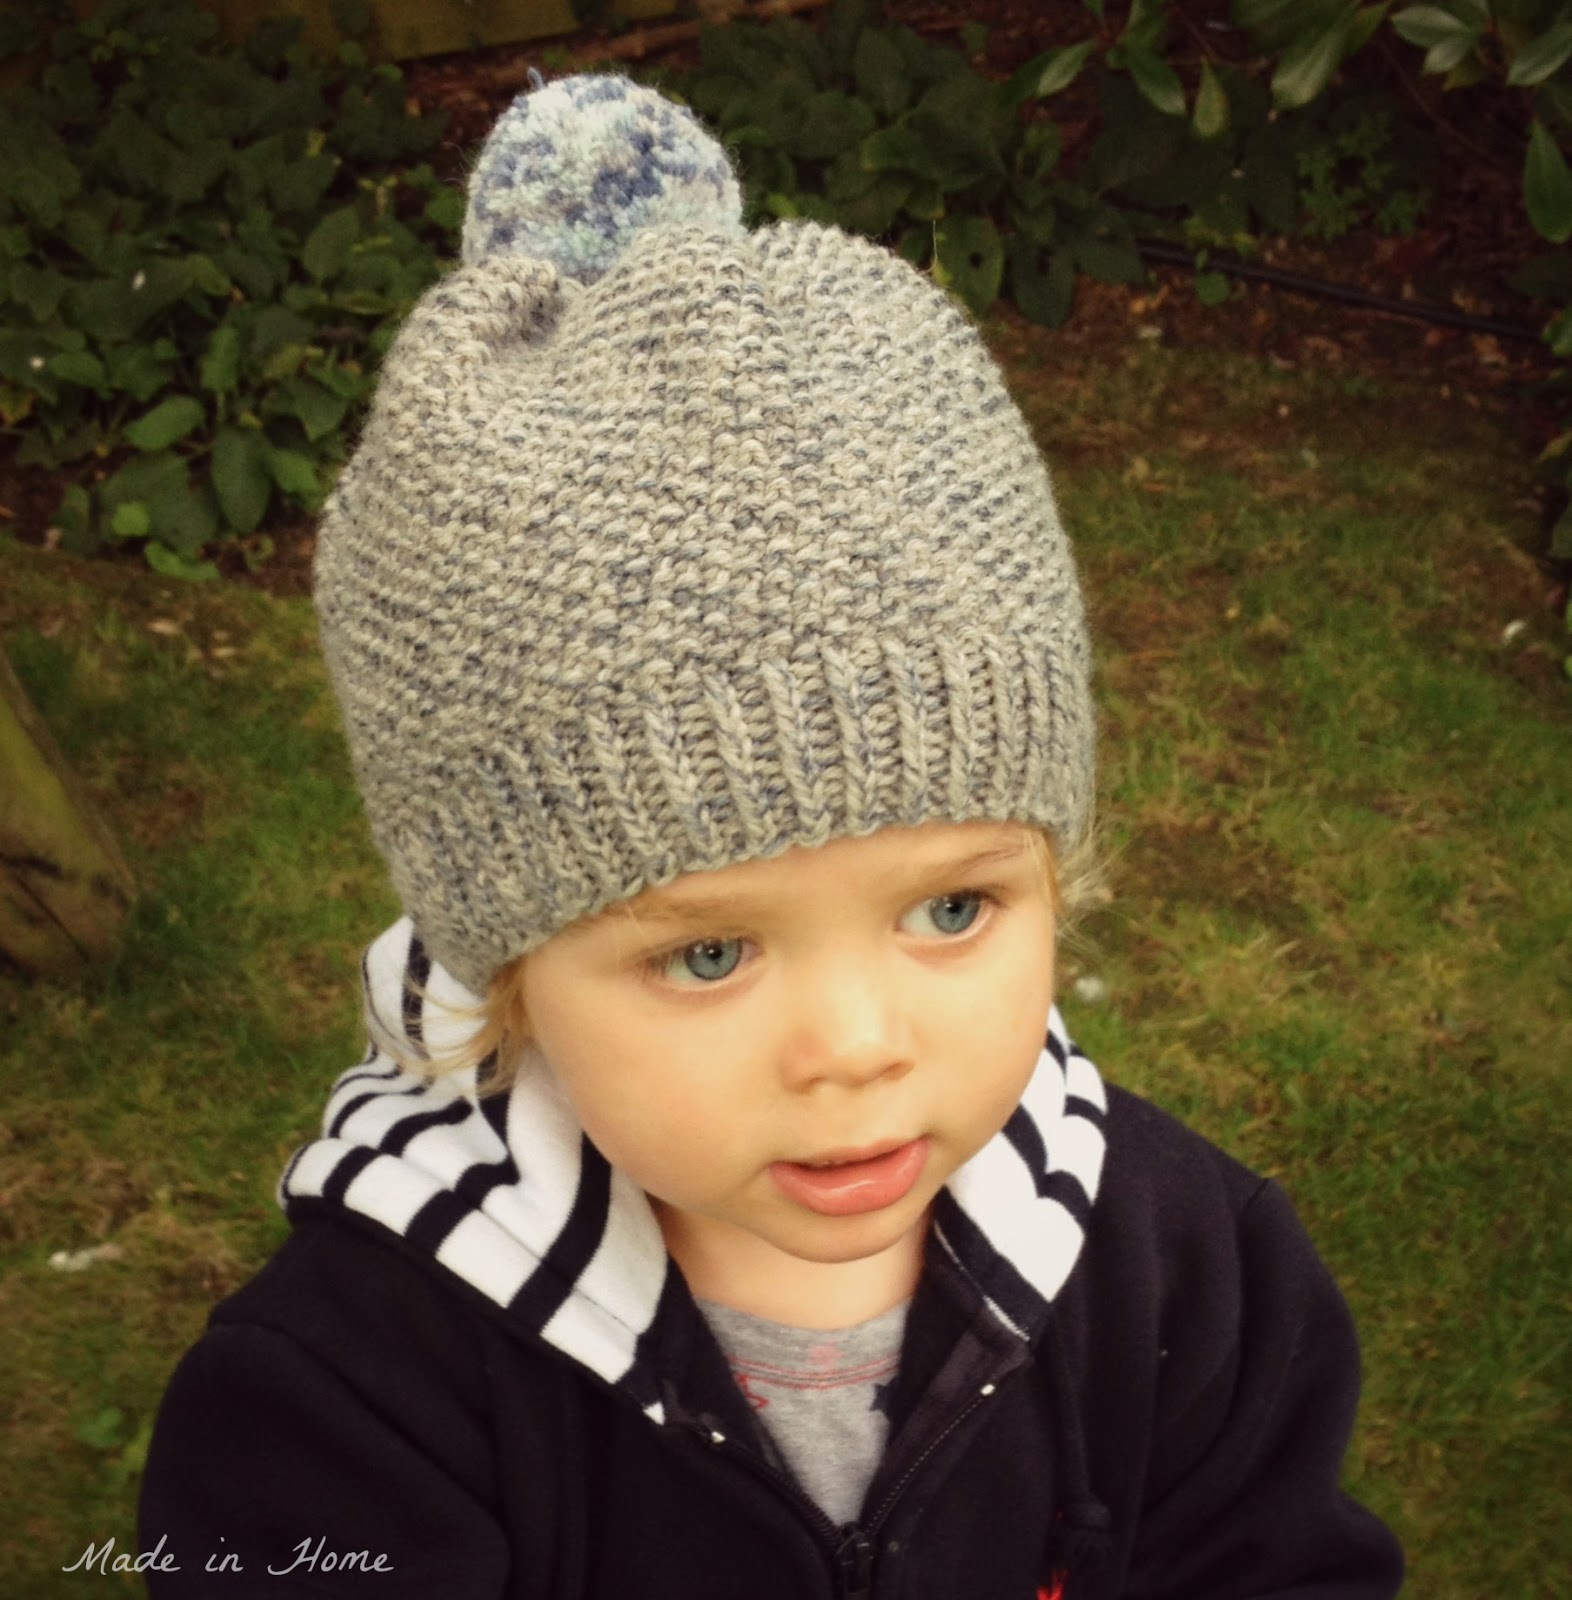 Knitting Pattern For Childs Beanie Hat : Made in Home: Toddler Pompom Beanie Hat A free pattern {Knitting}